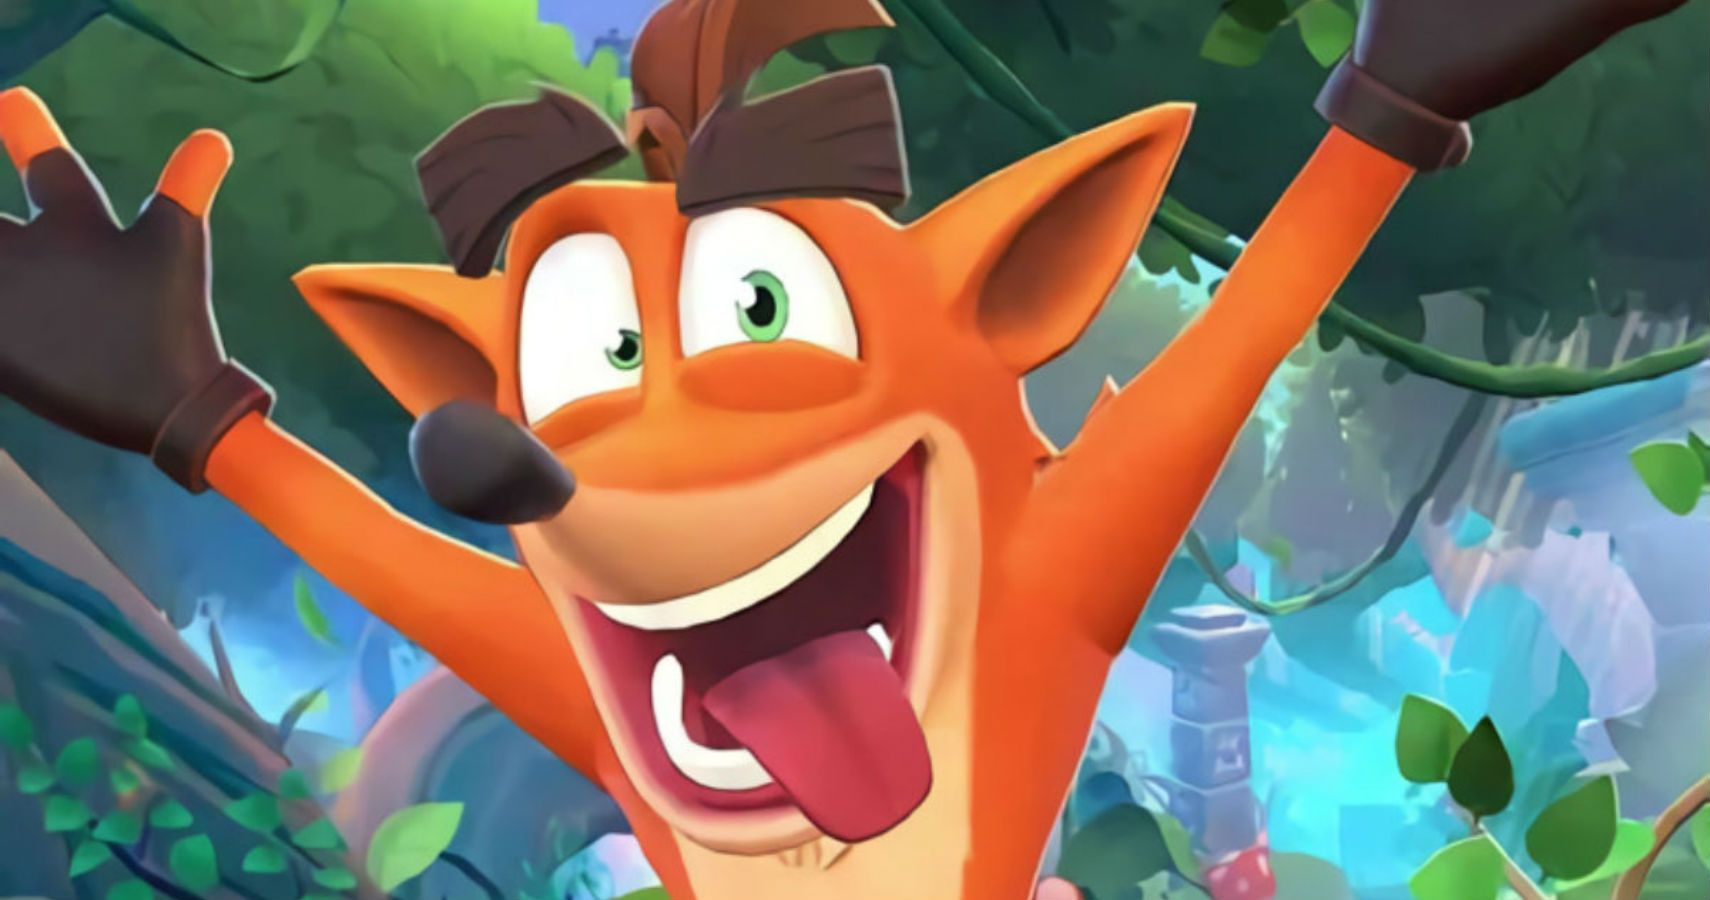 Crash Bandicoot PS4 Release Date Leaked